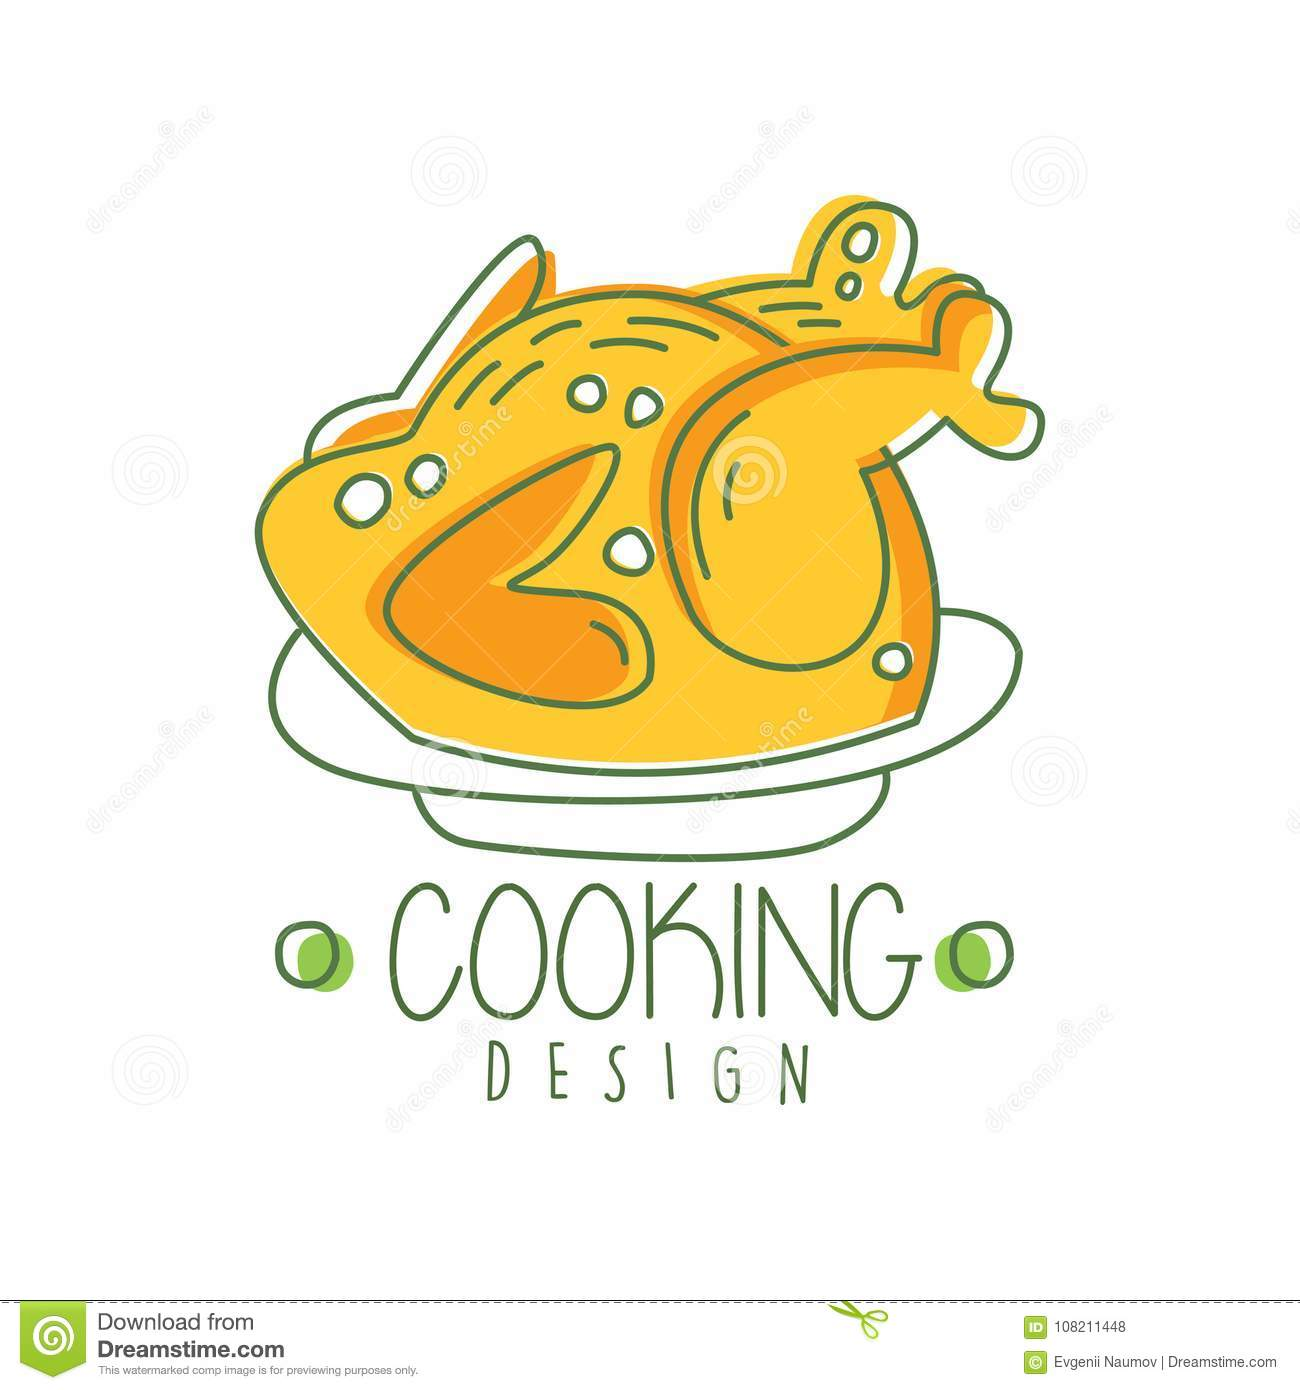 Hand Drawn Cooking Logo Original Design With Baked Chicken On A Plate Abstract Kids Drawing For Home Kitchen Food Creative Line Label Cafe Menu